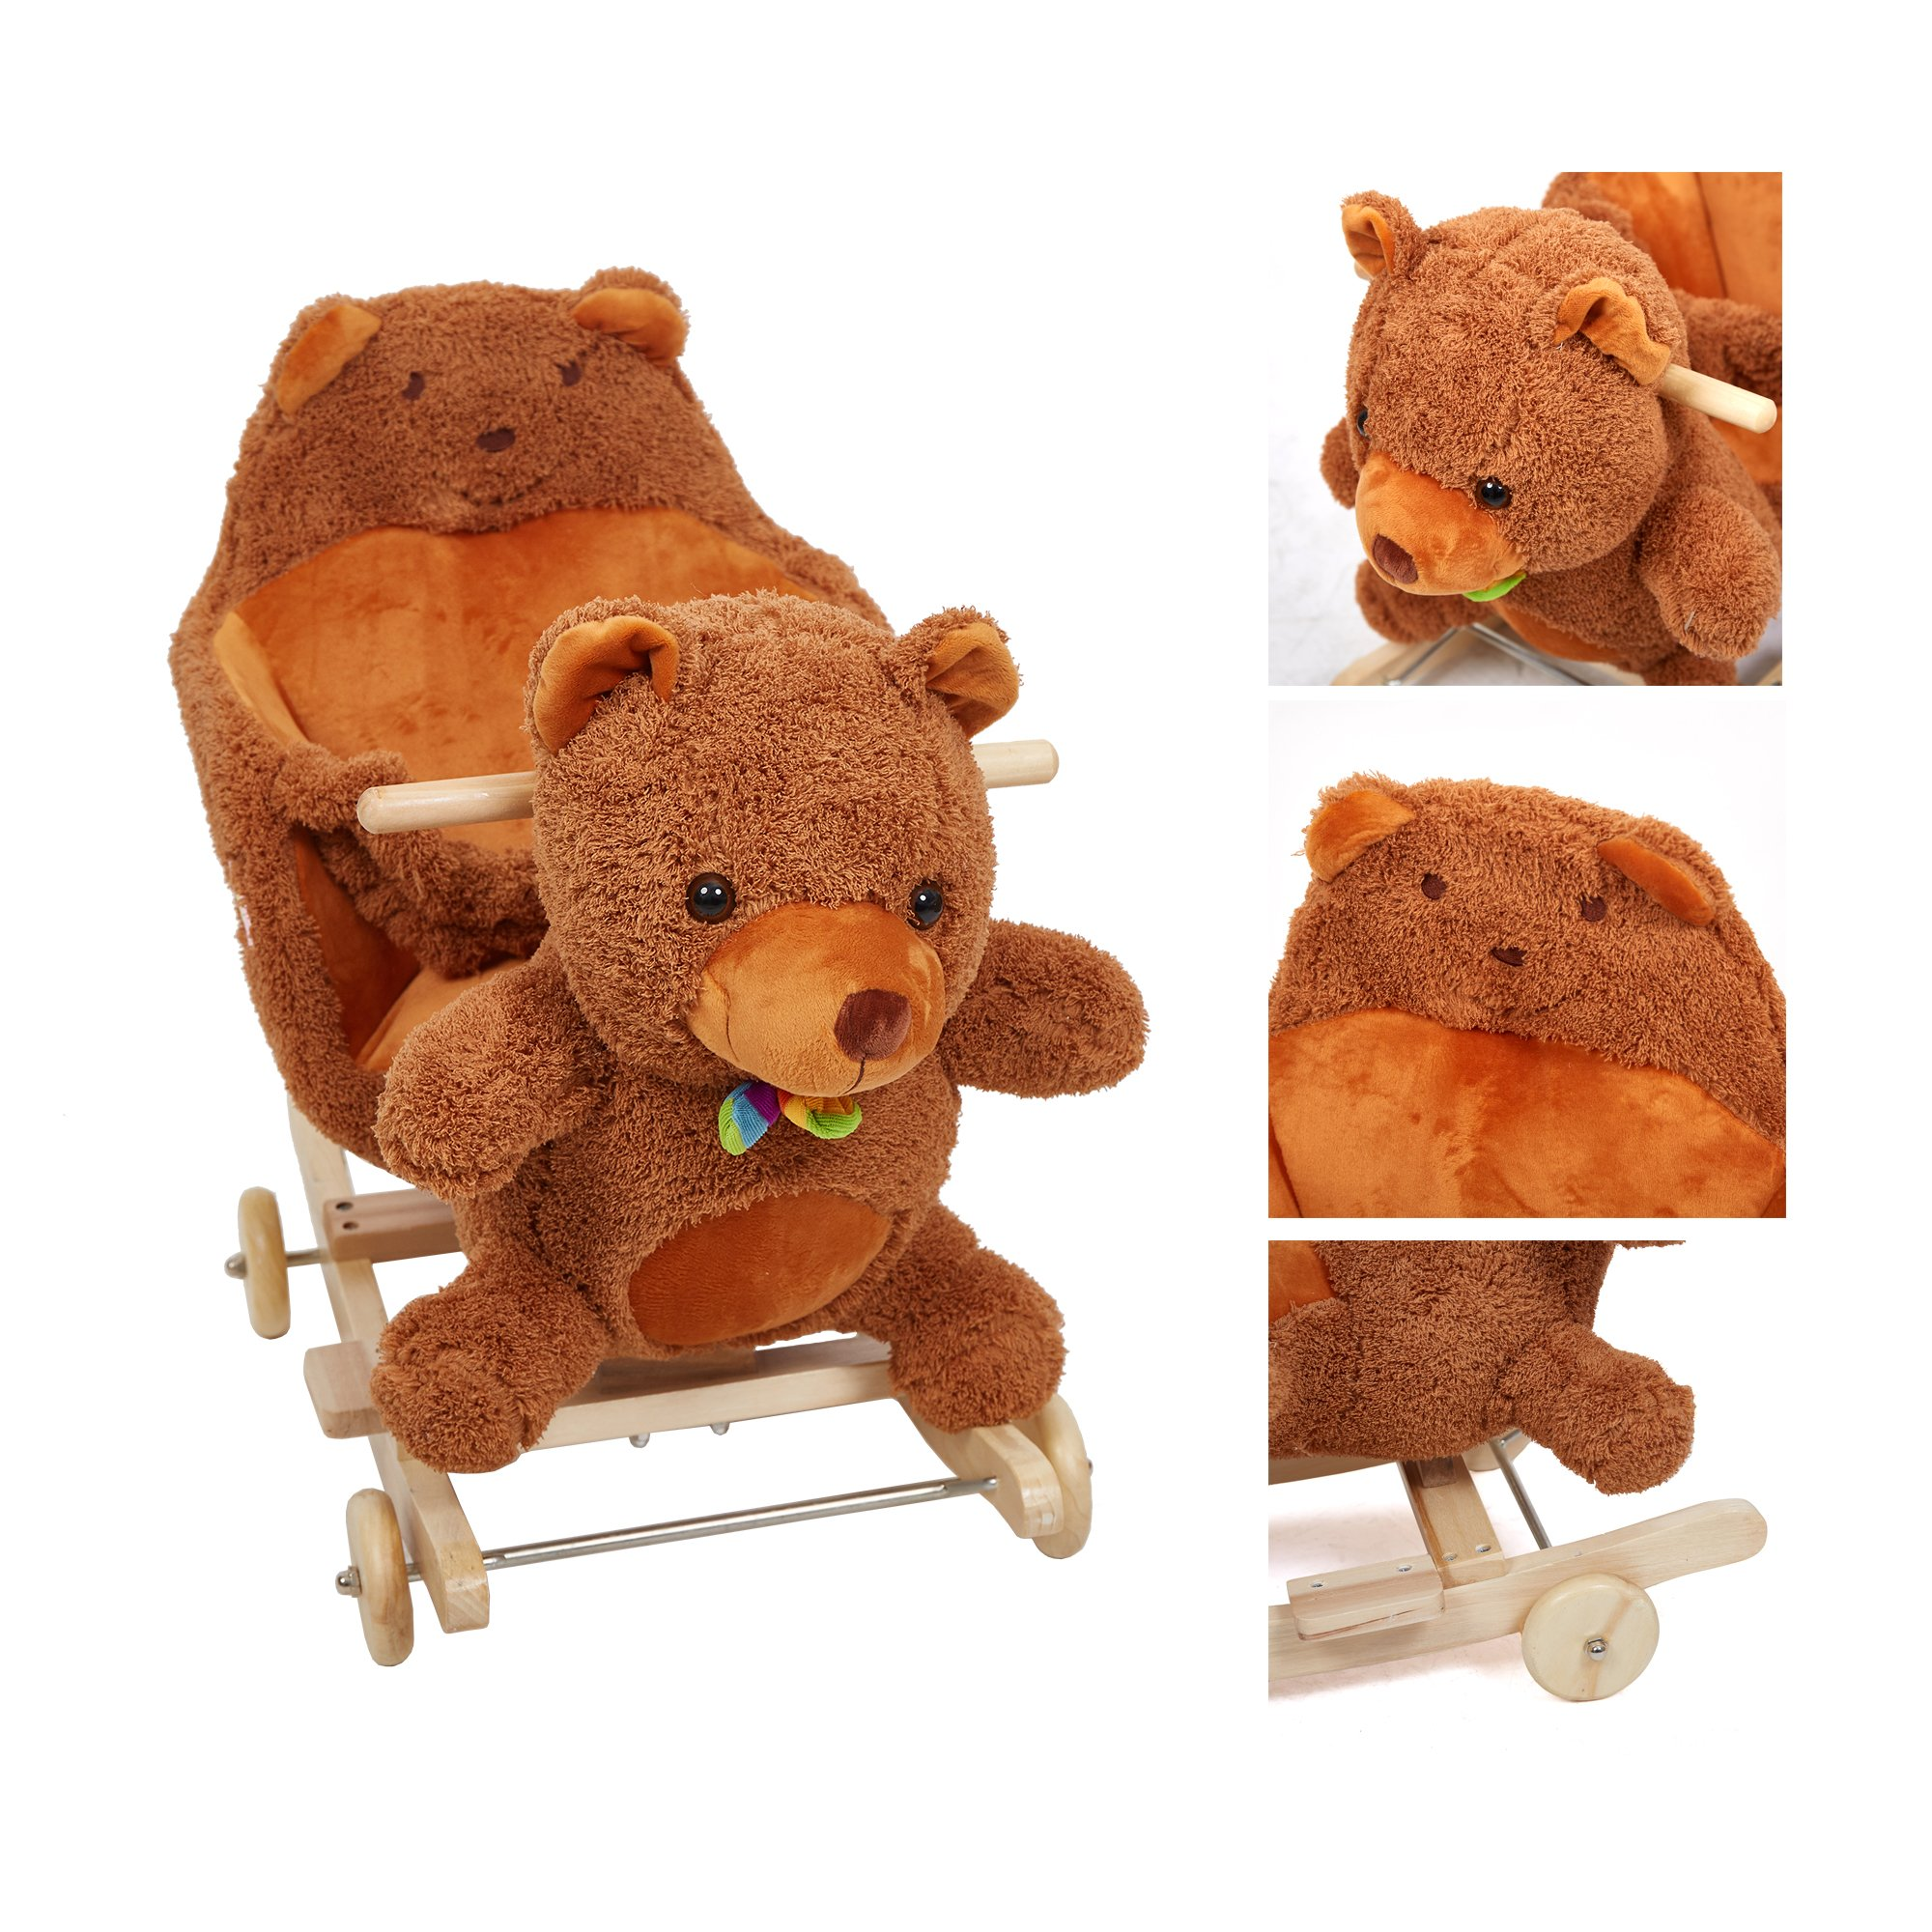 Lucky Tree Rocking Horse Wooden Riding Toys Plush Brown Bear Ride on Toy with Wheels for kids 18 Months-4 Years,Bear by Lucky Tree (Image #6)